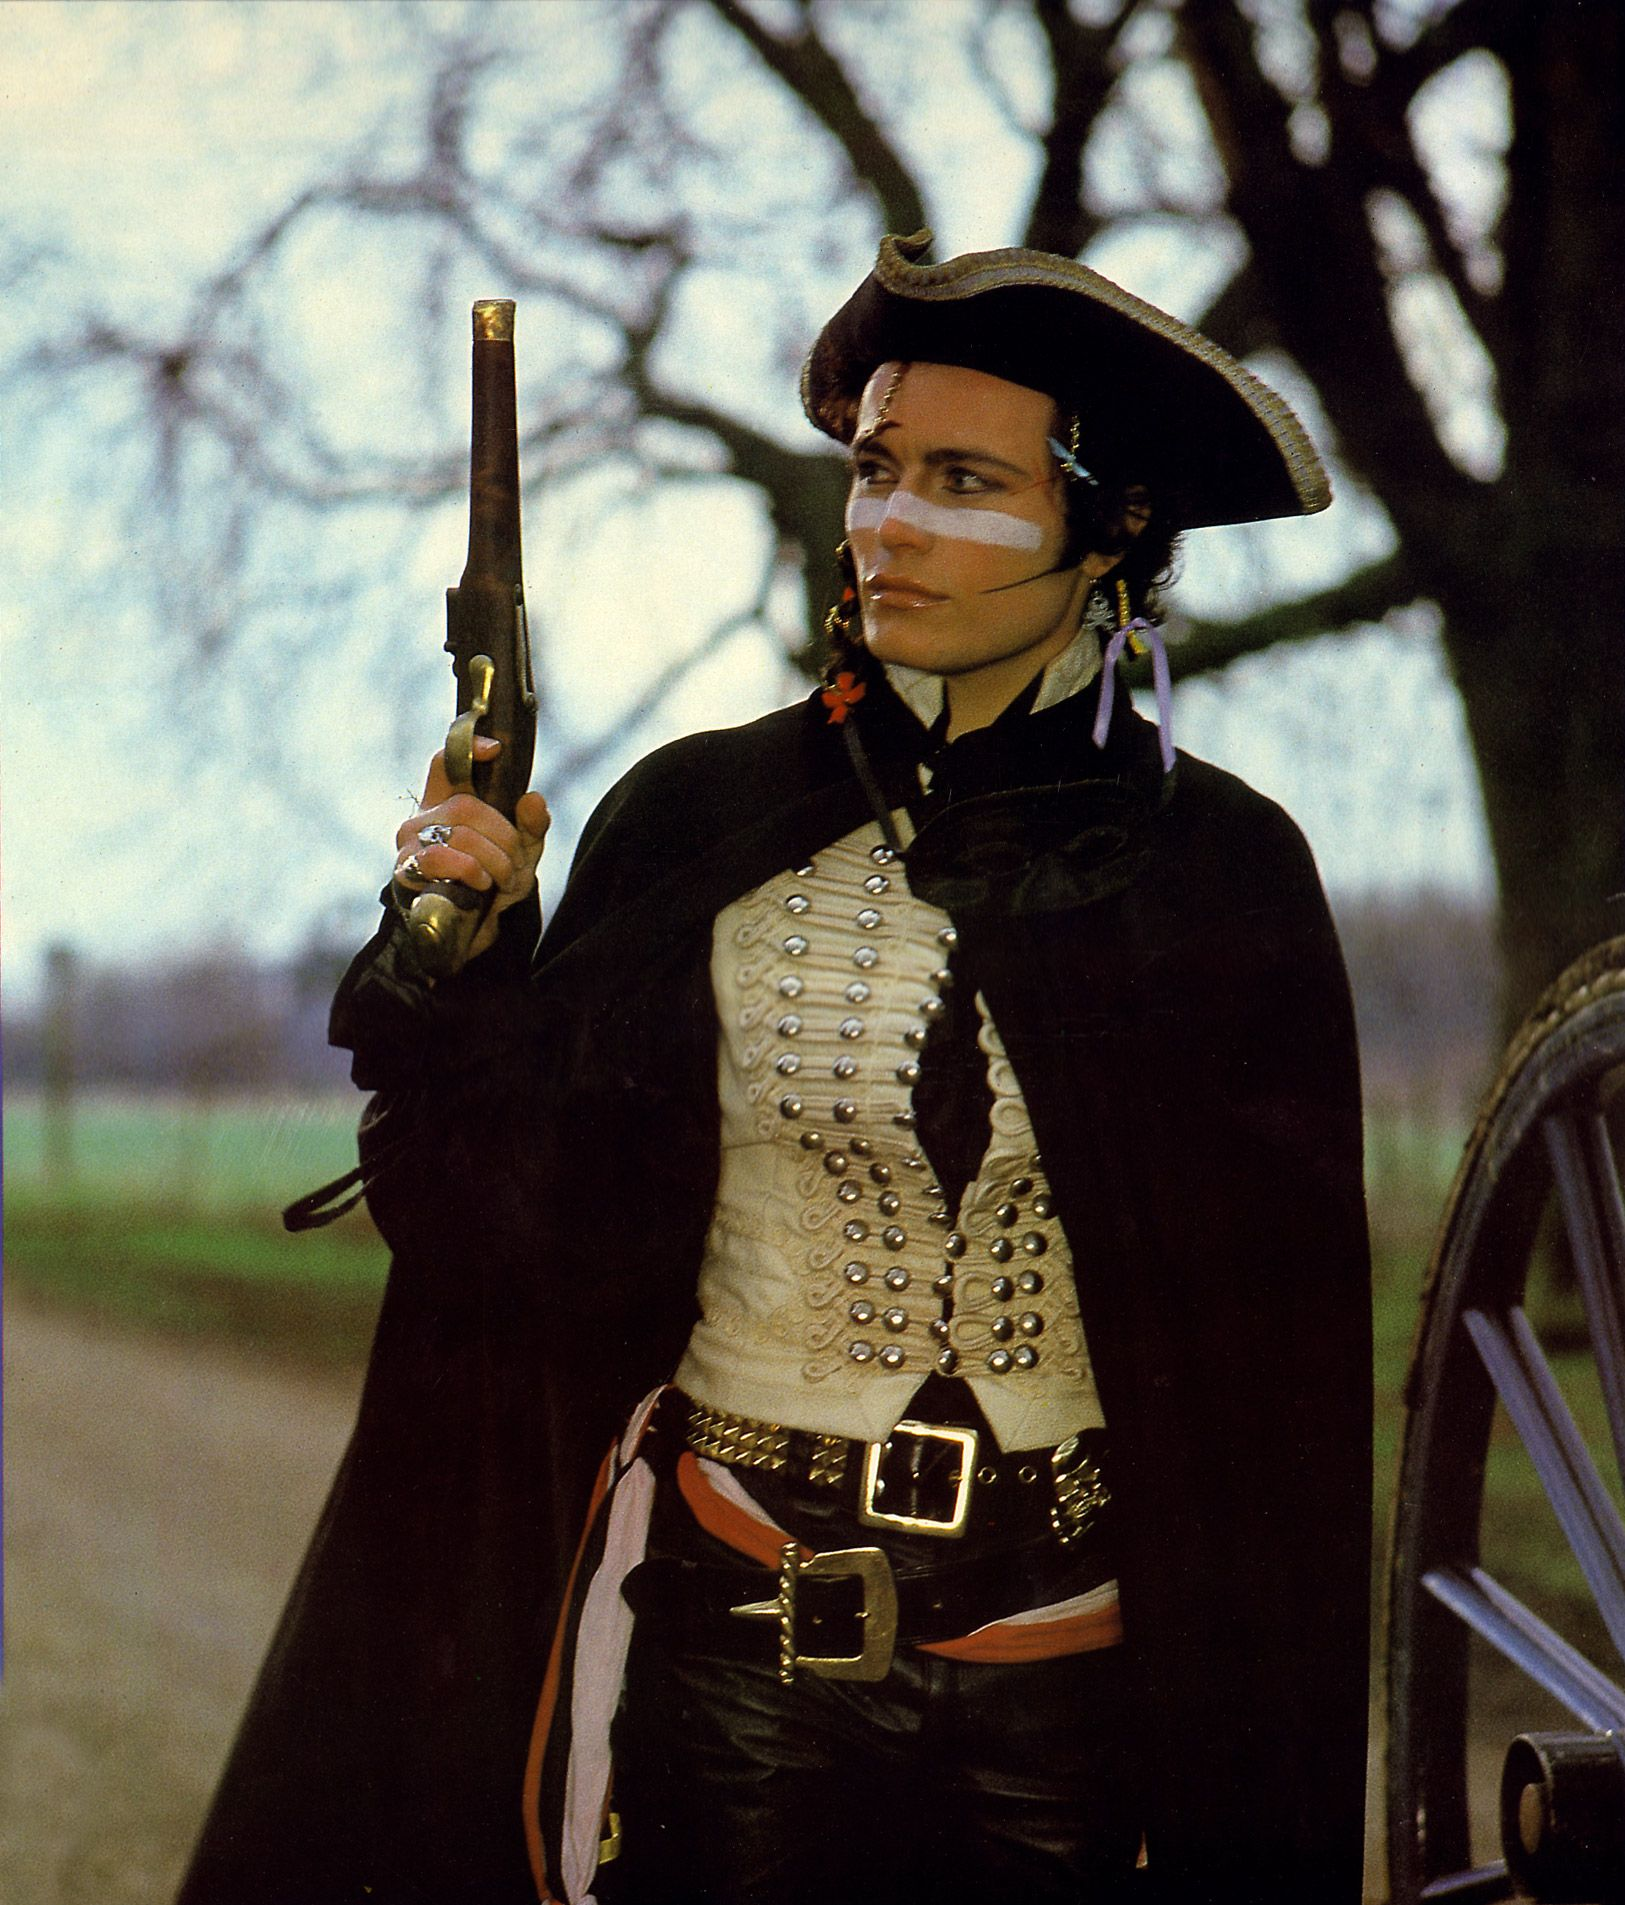 Adam Ant popularised the romantic side of punk with